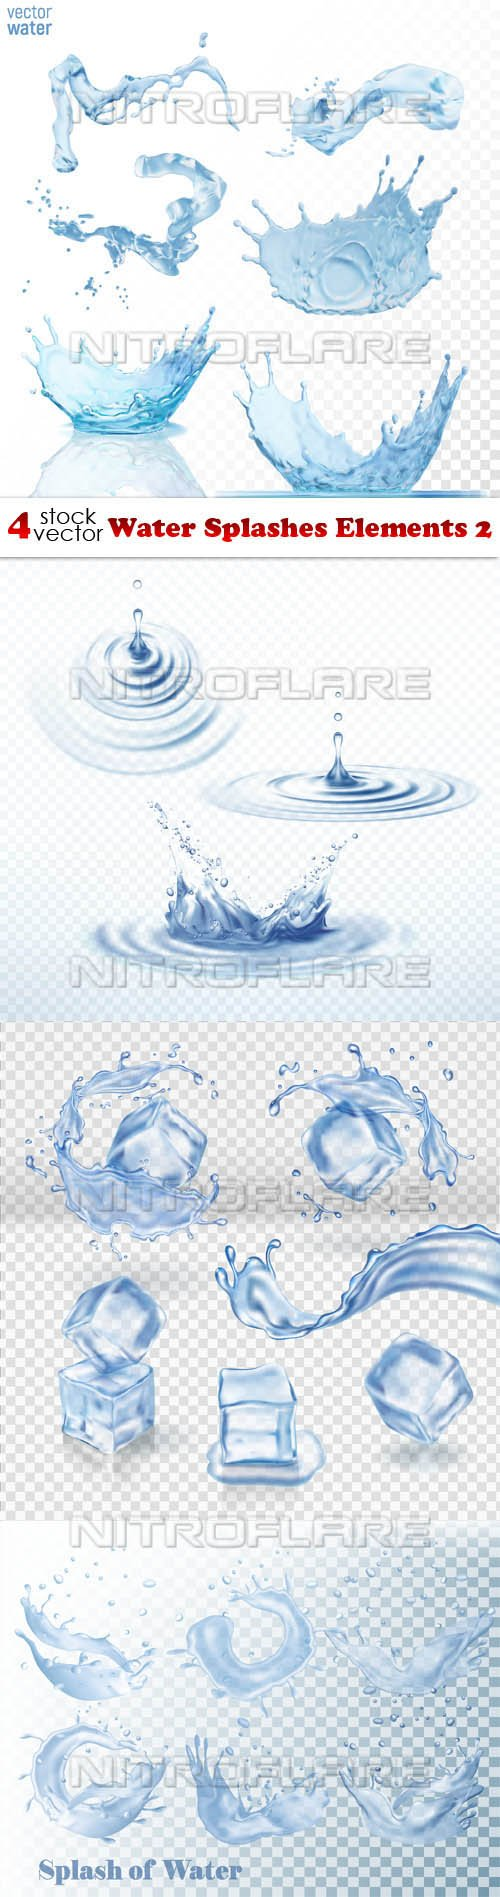 Vectors - Water Splashes Elements 2